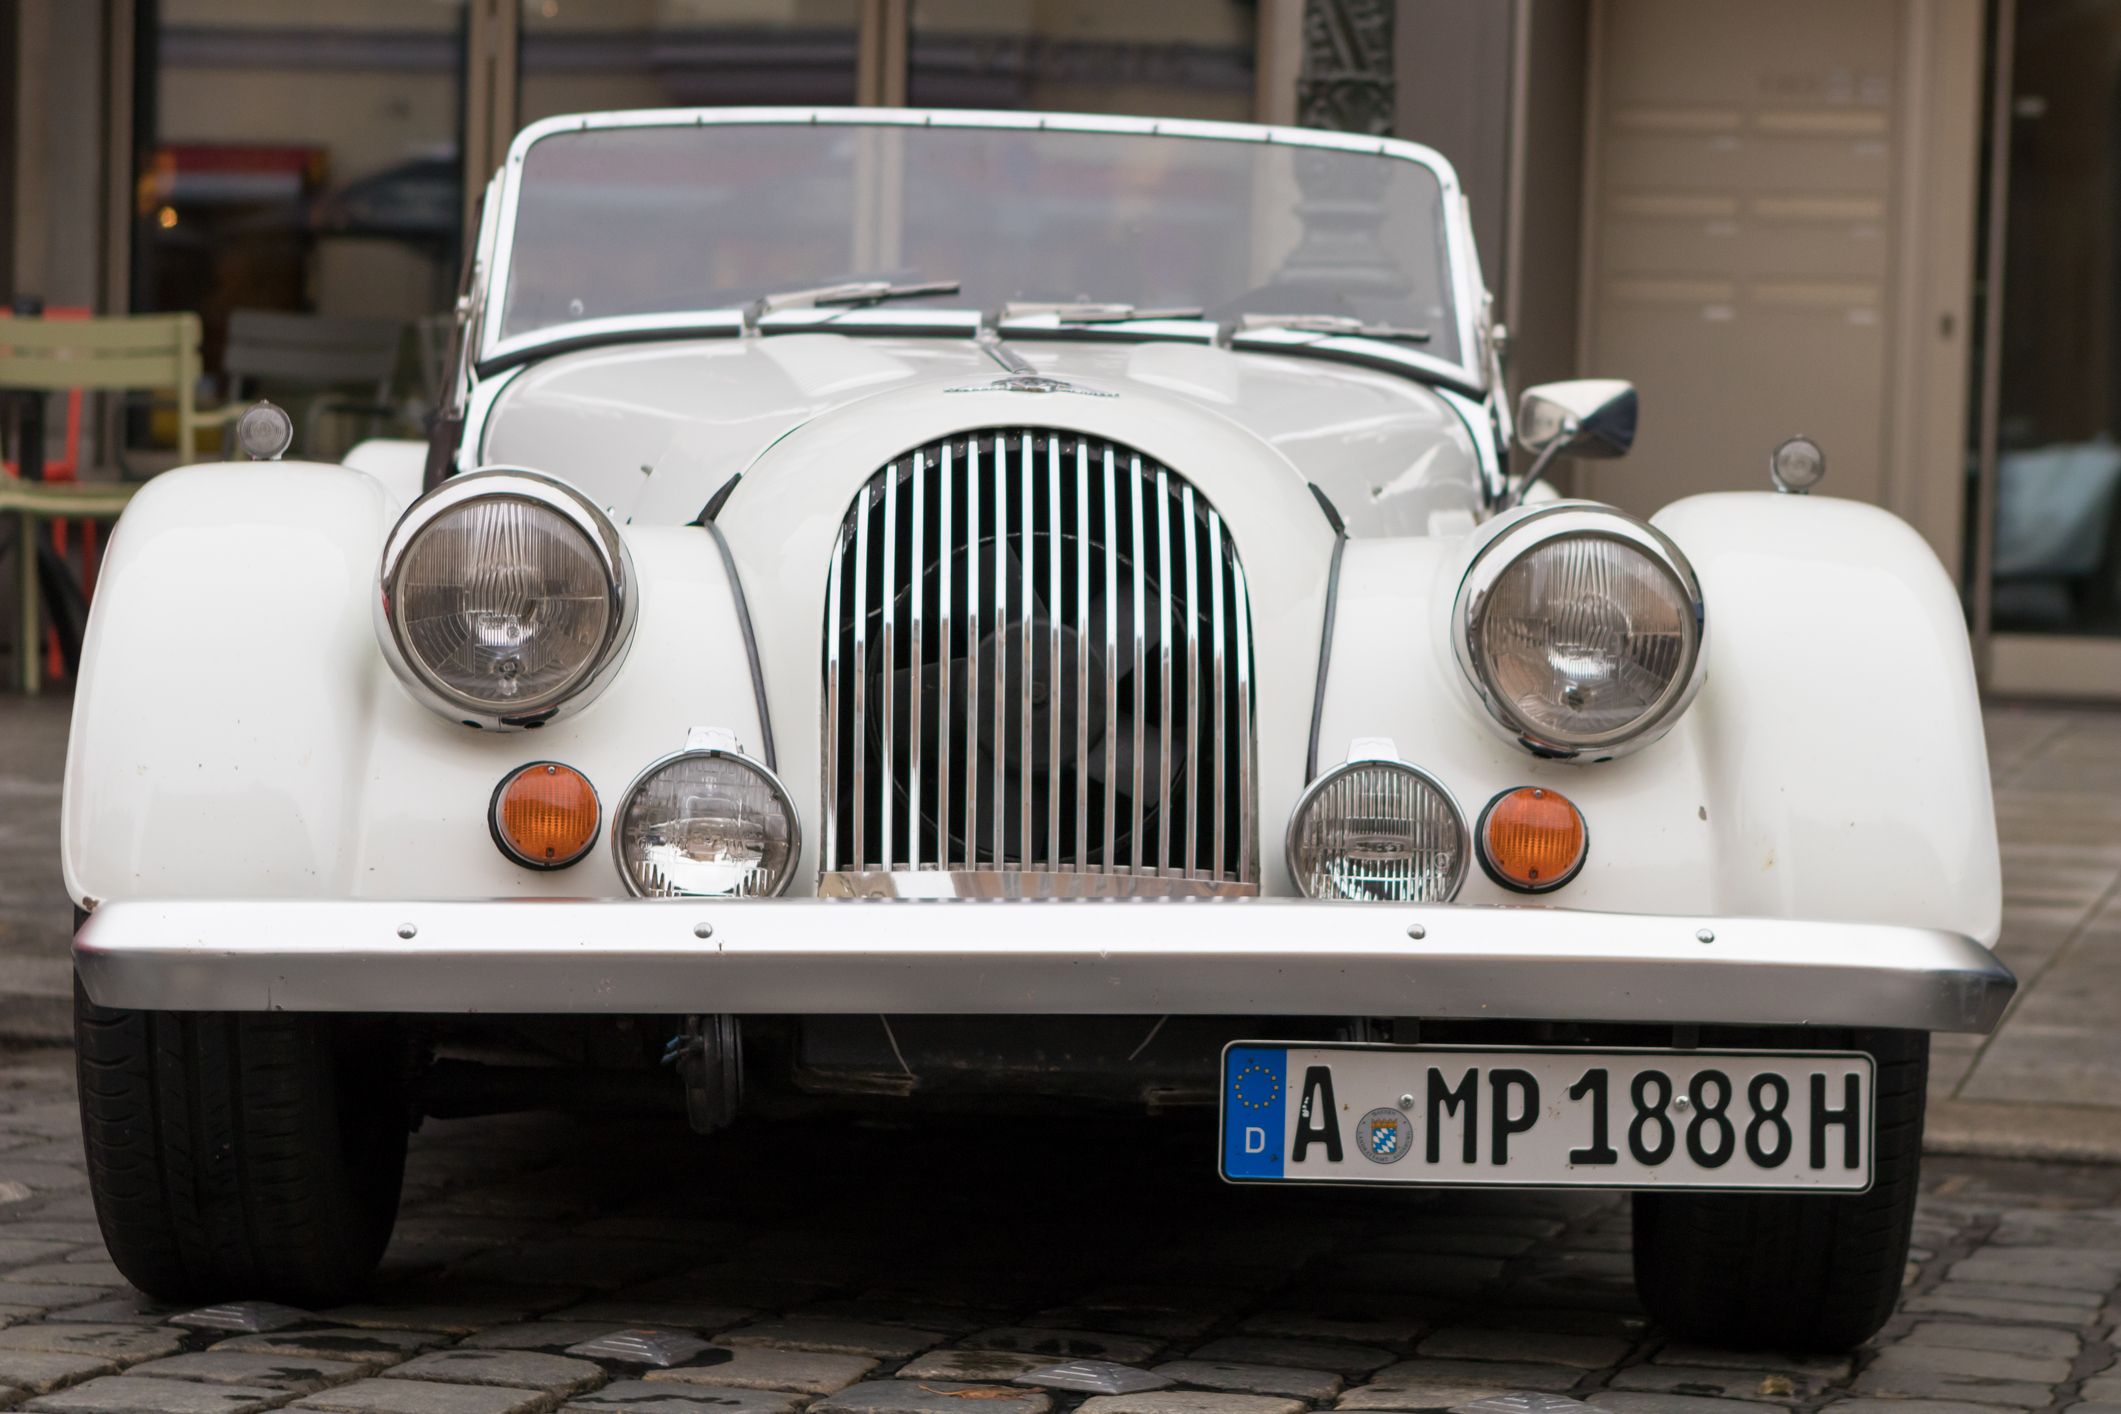 Morgan oldtimer car at the Fuggerstadt Classic 2017 Oldtimer Rallye